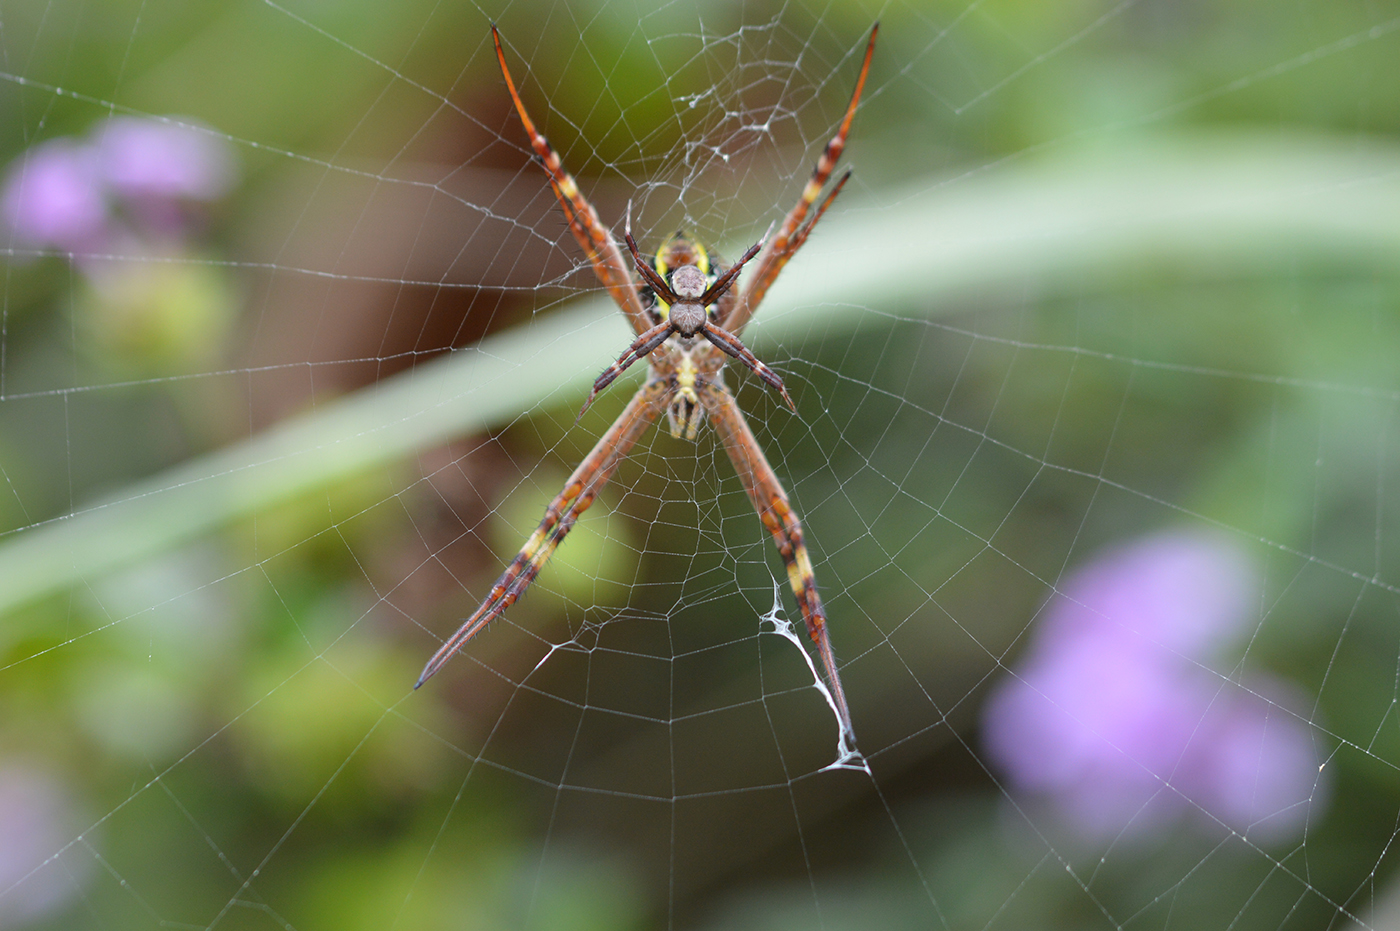 Female Argiope keyserlingi with male on the web